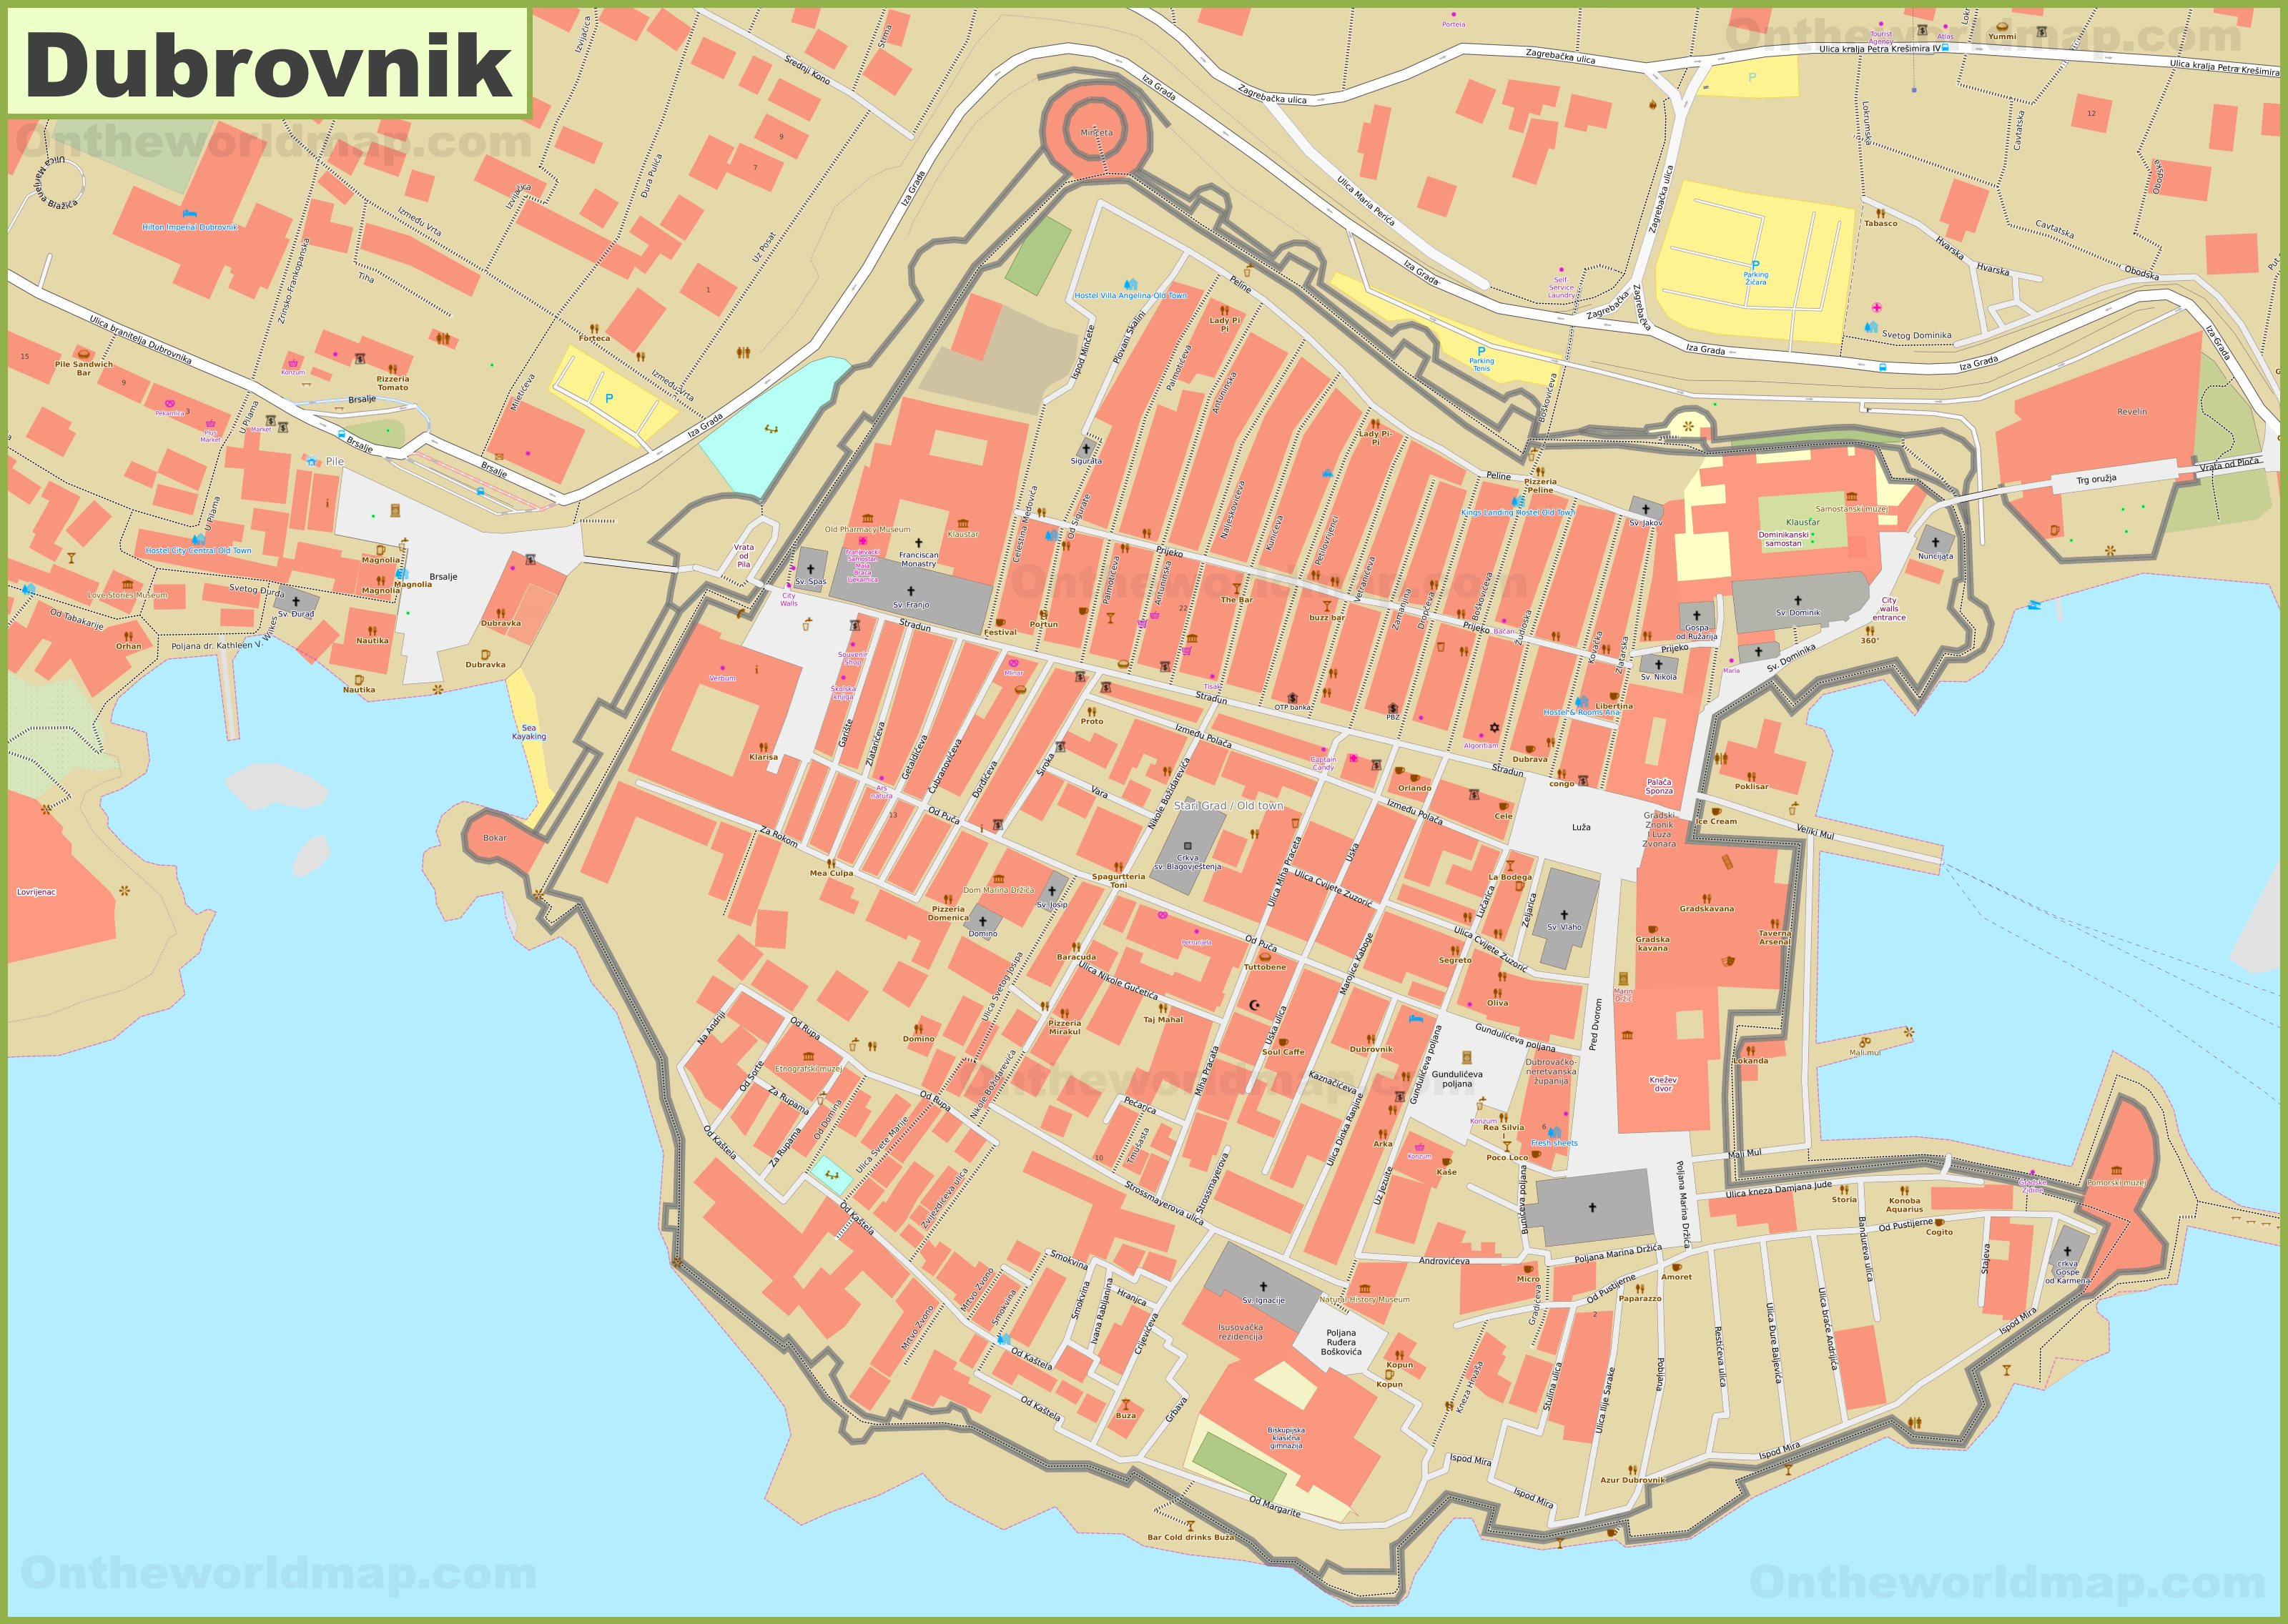 Dubrovnik old town map on